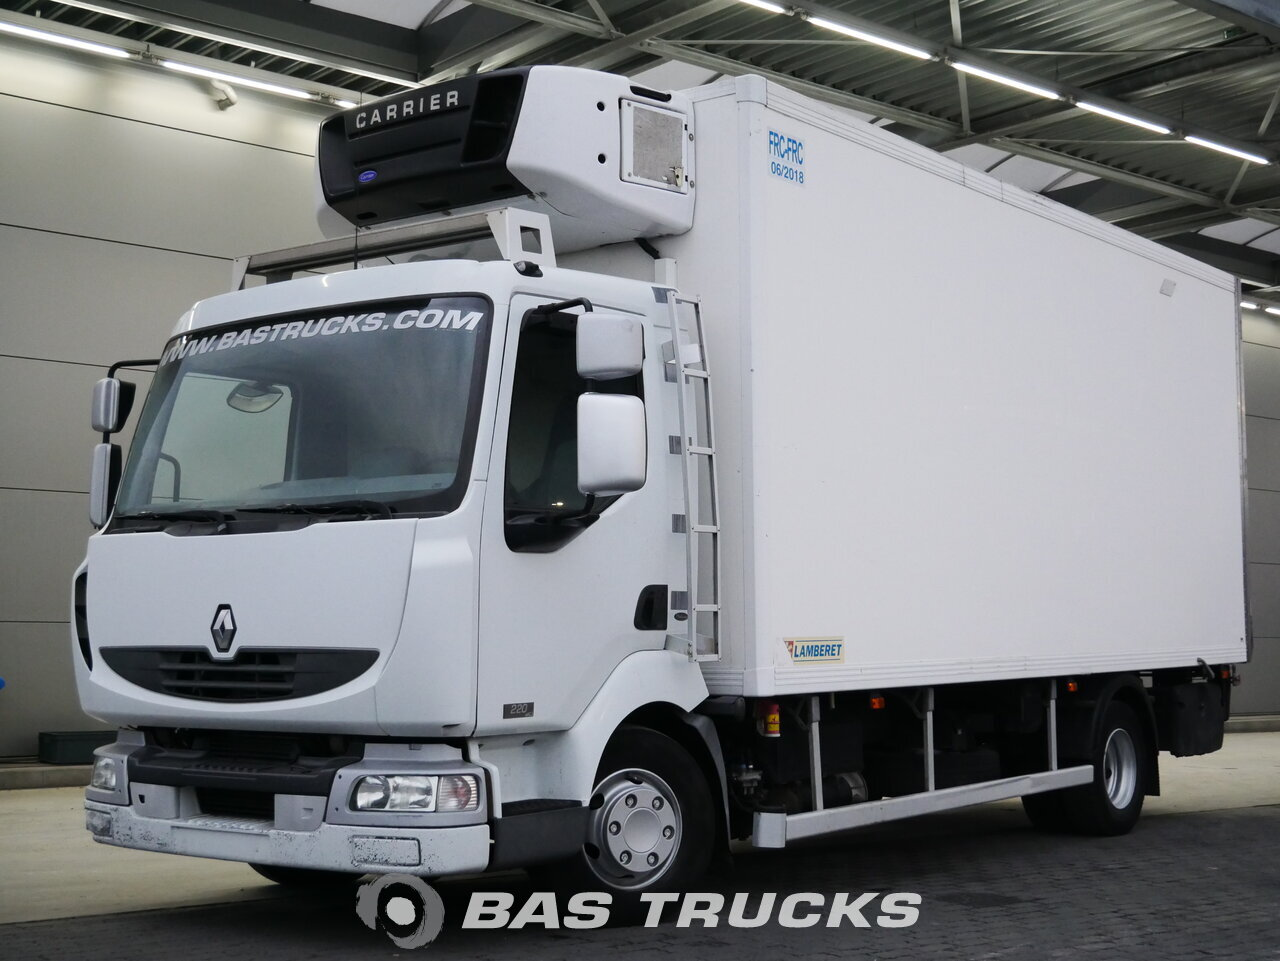 For sale at BAS Trucks: Renault Midlum 220 dCi 4X2 07/2006